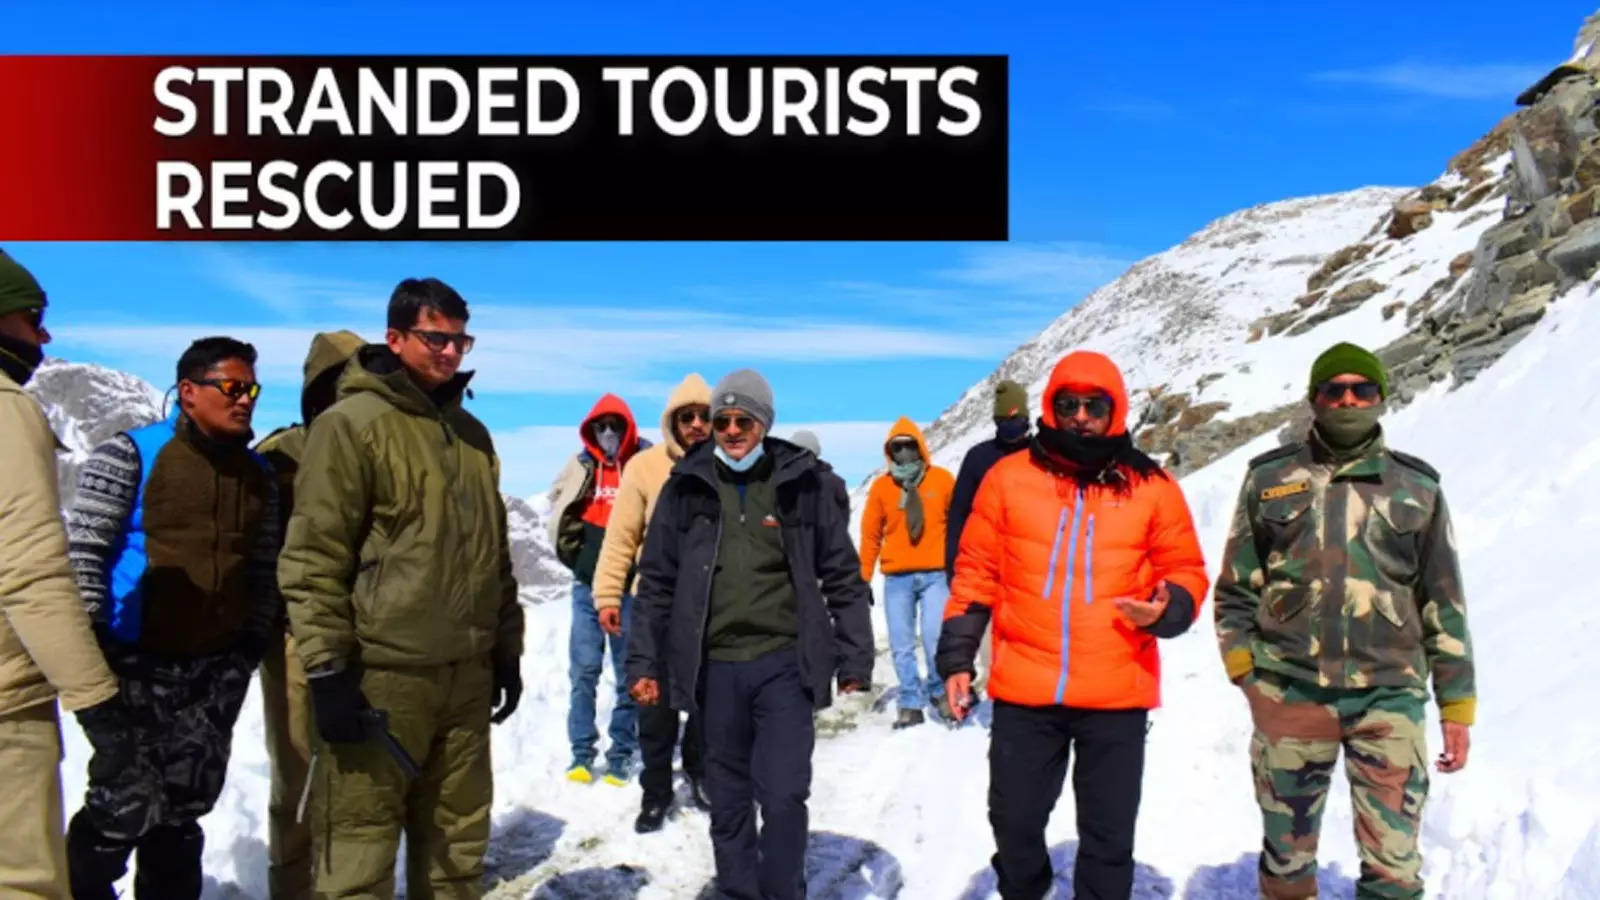 himachal-pradesh-59-tourists-stranded-in-spiti-valley-after-heavy-snowfall-rescued